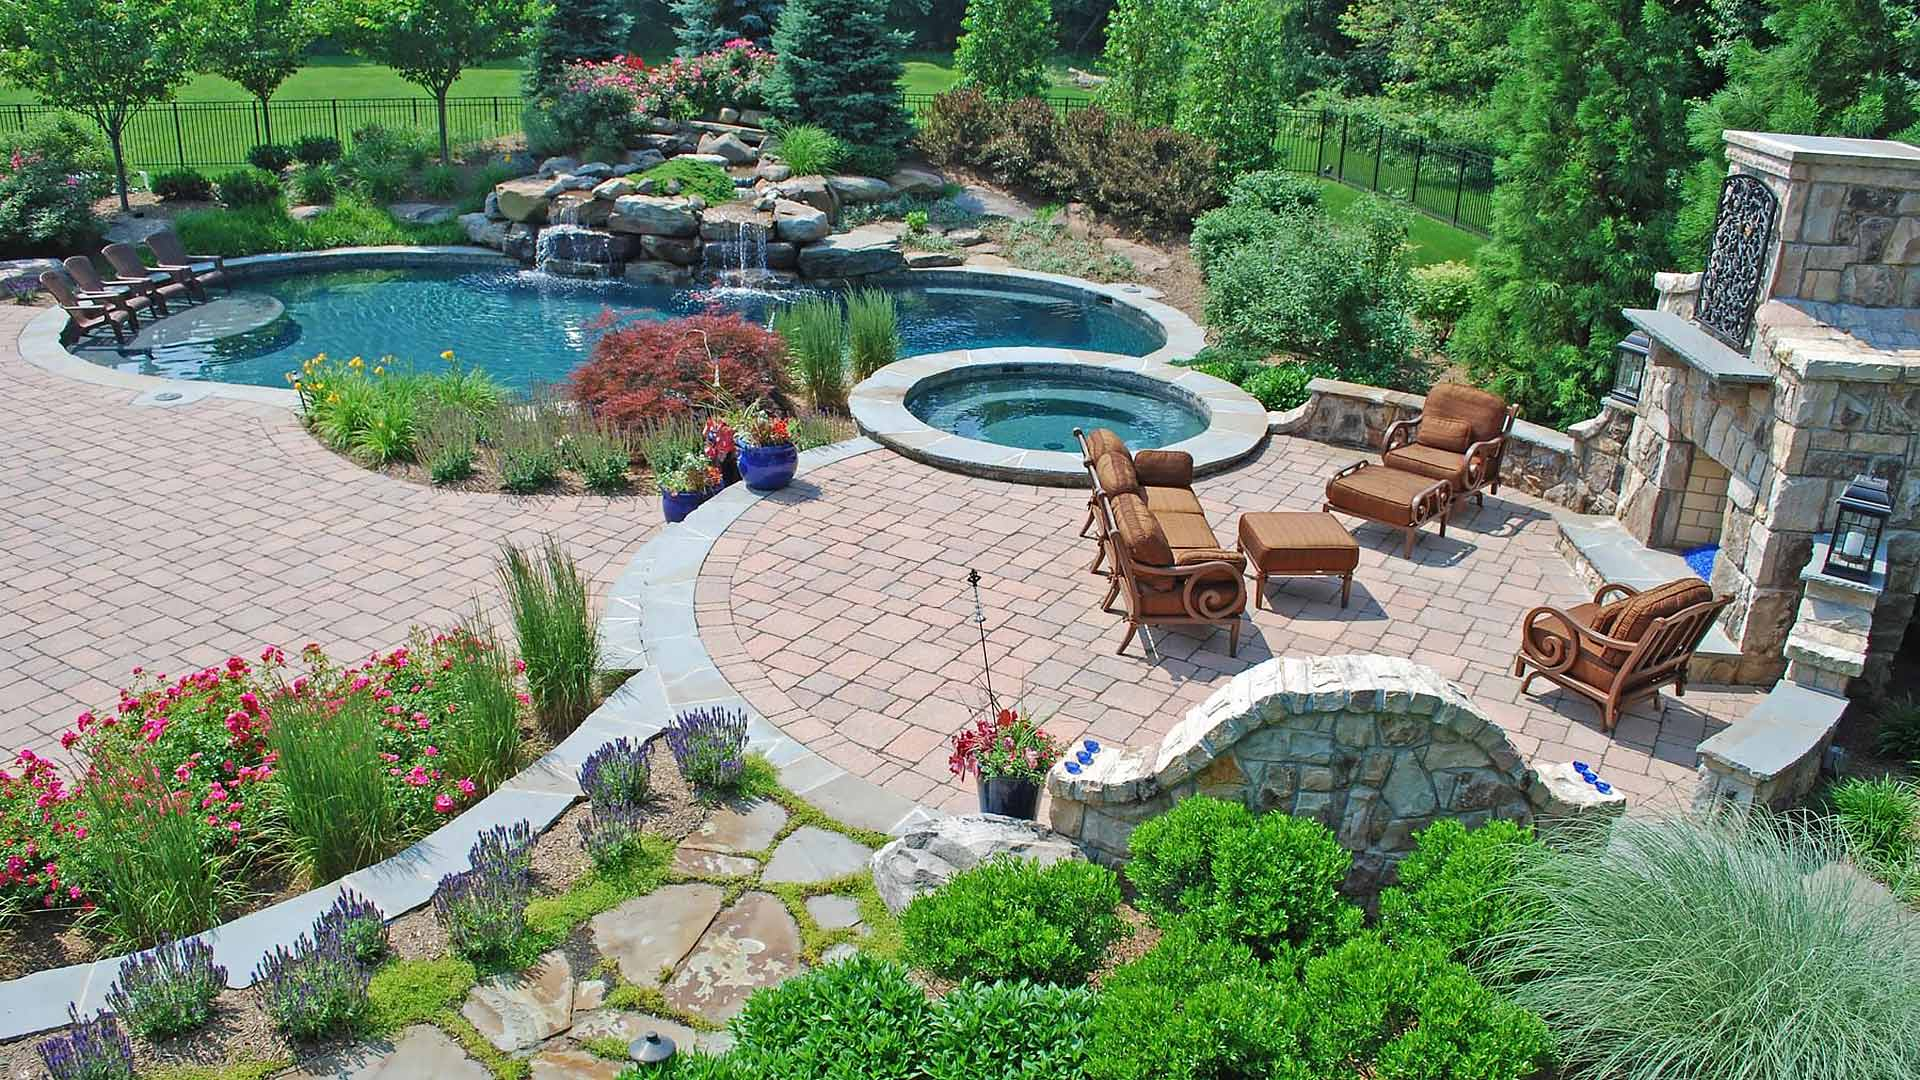 Poolside outdoor living area designed for a Chester Springs, Pennsylvania home.